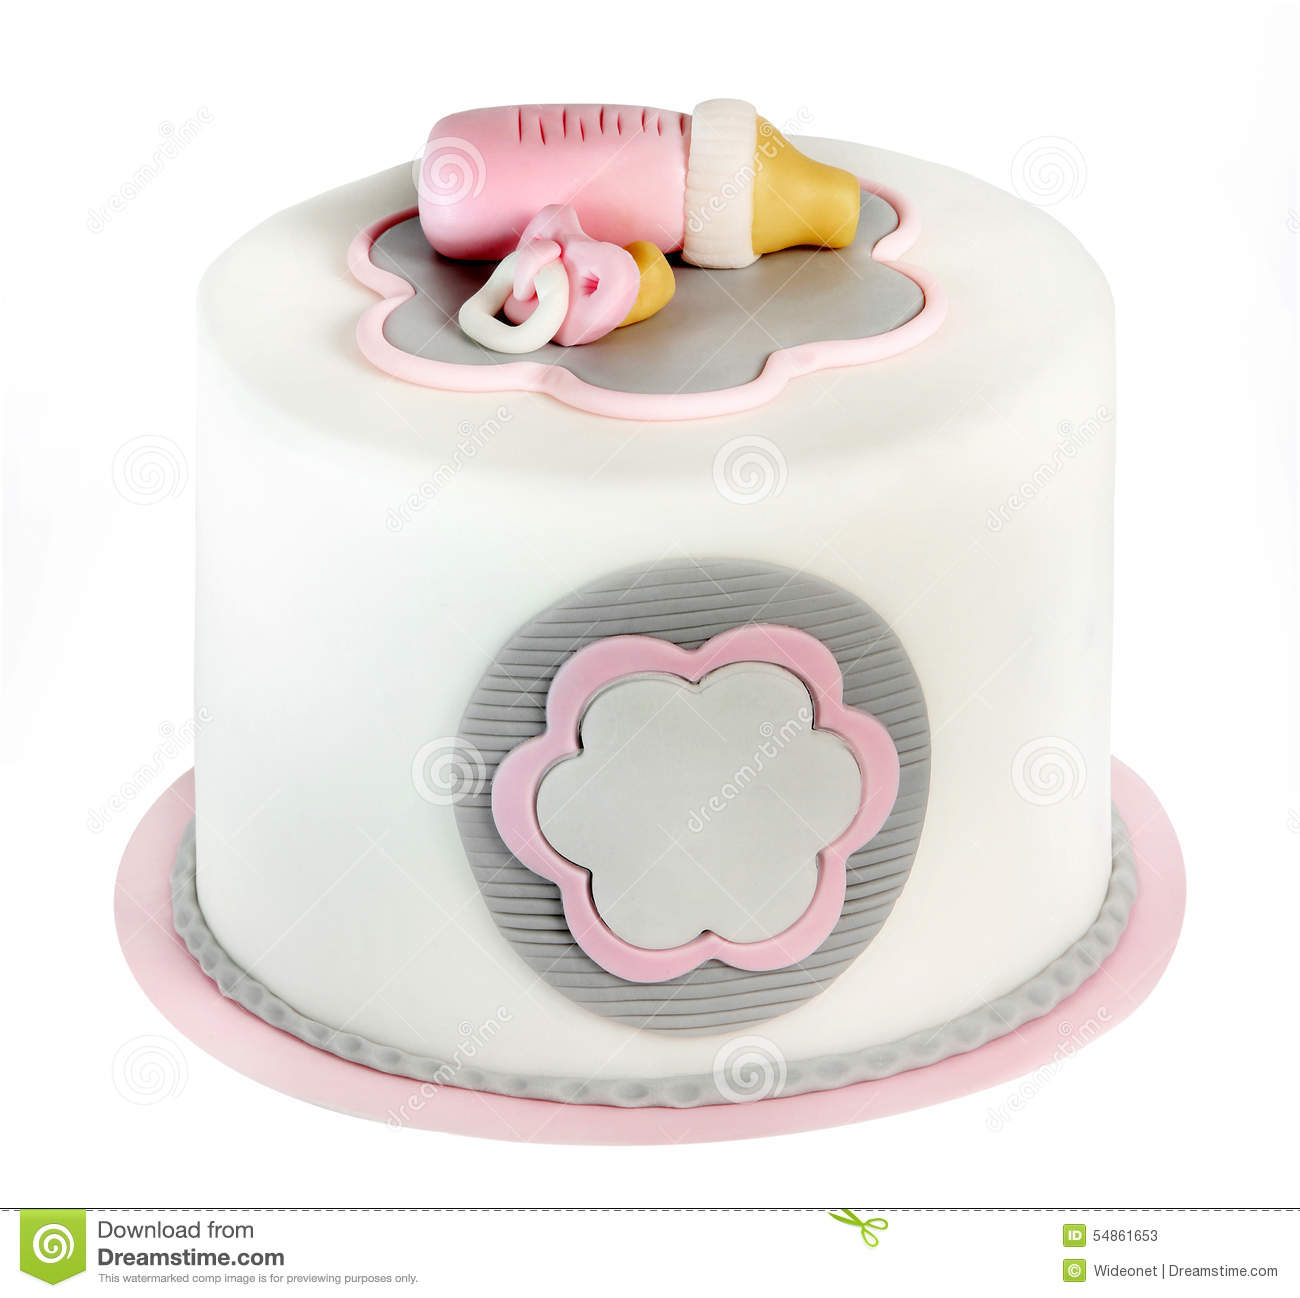 Pink birthday cake for baby isolated on white background